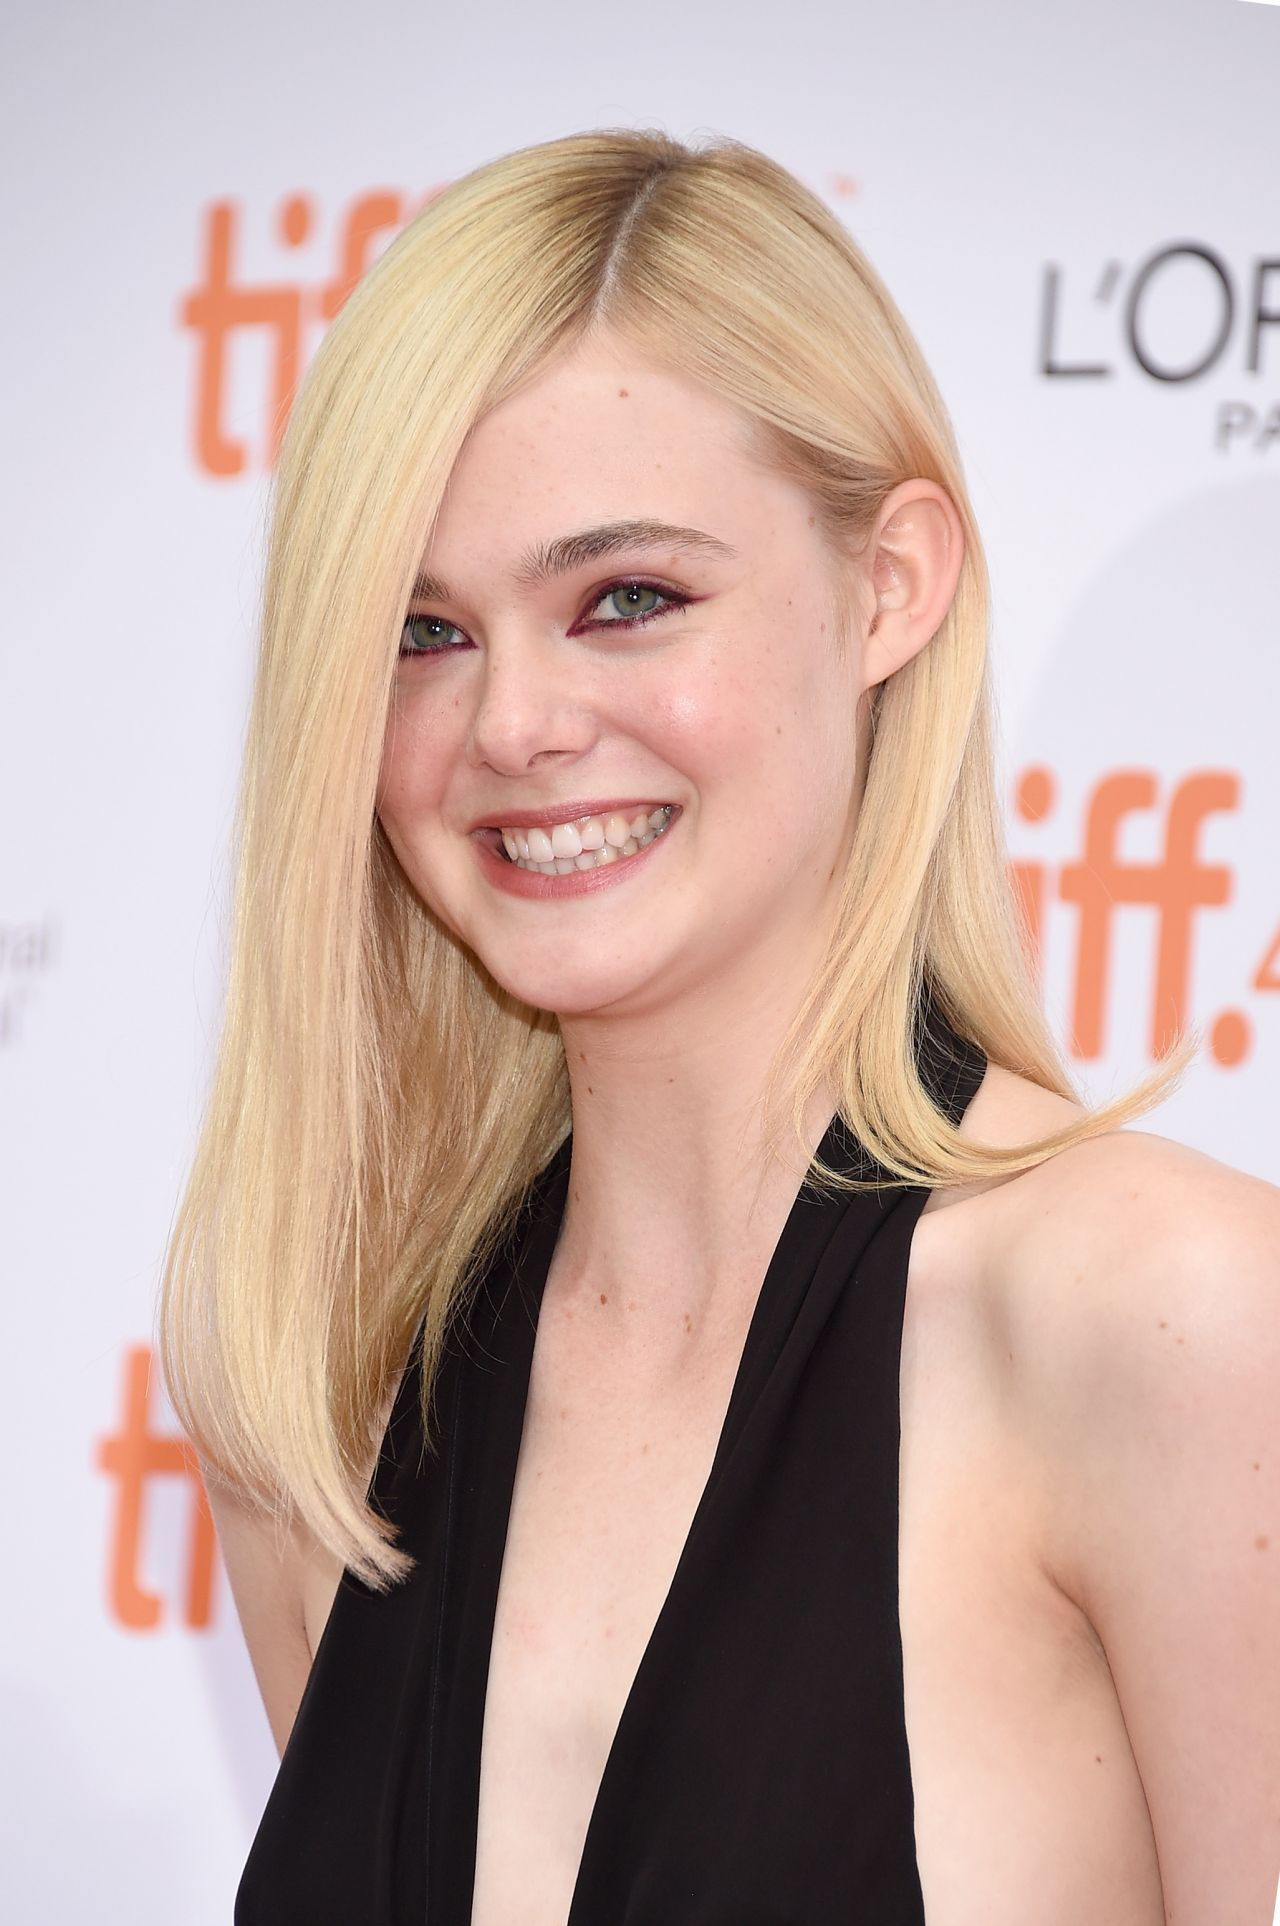 Elle Fanning Covers Fashion Magazine Says She Loves Being: 'About Ray' Premiere 2015 TIFF